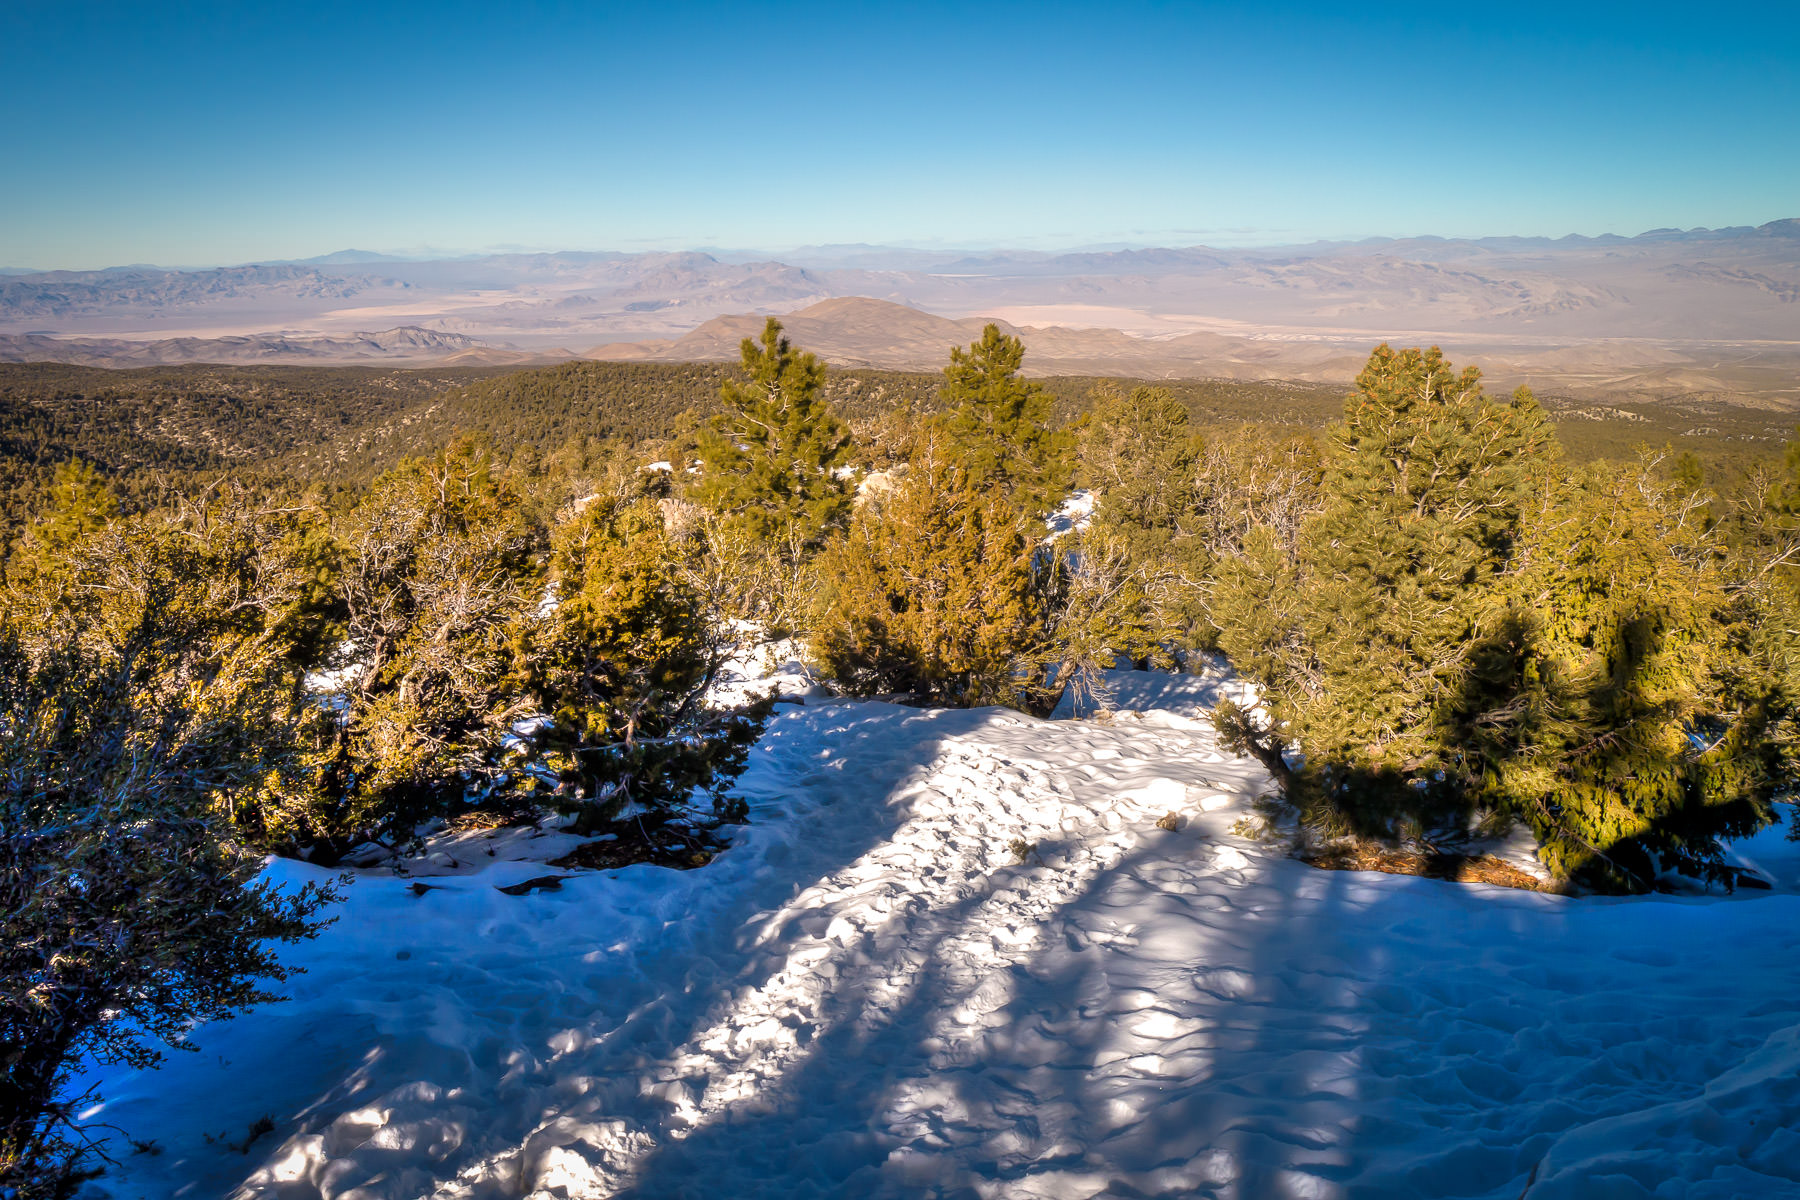 Snow and evergreen trees atop Nevada's Mount Charleston overlook the desert far below.